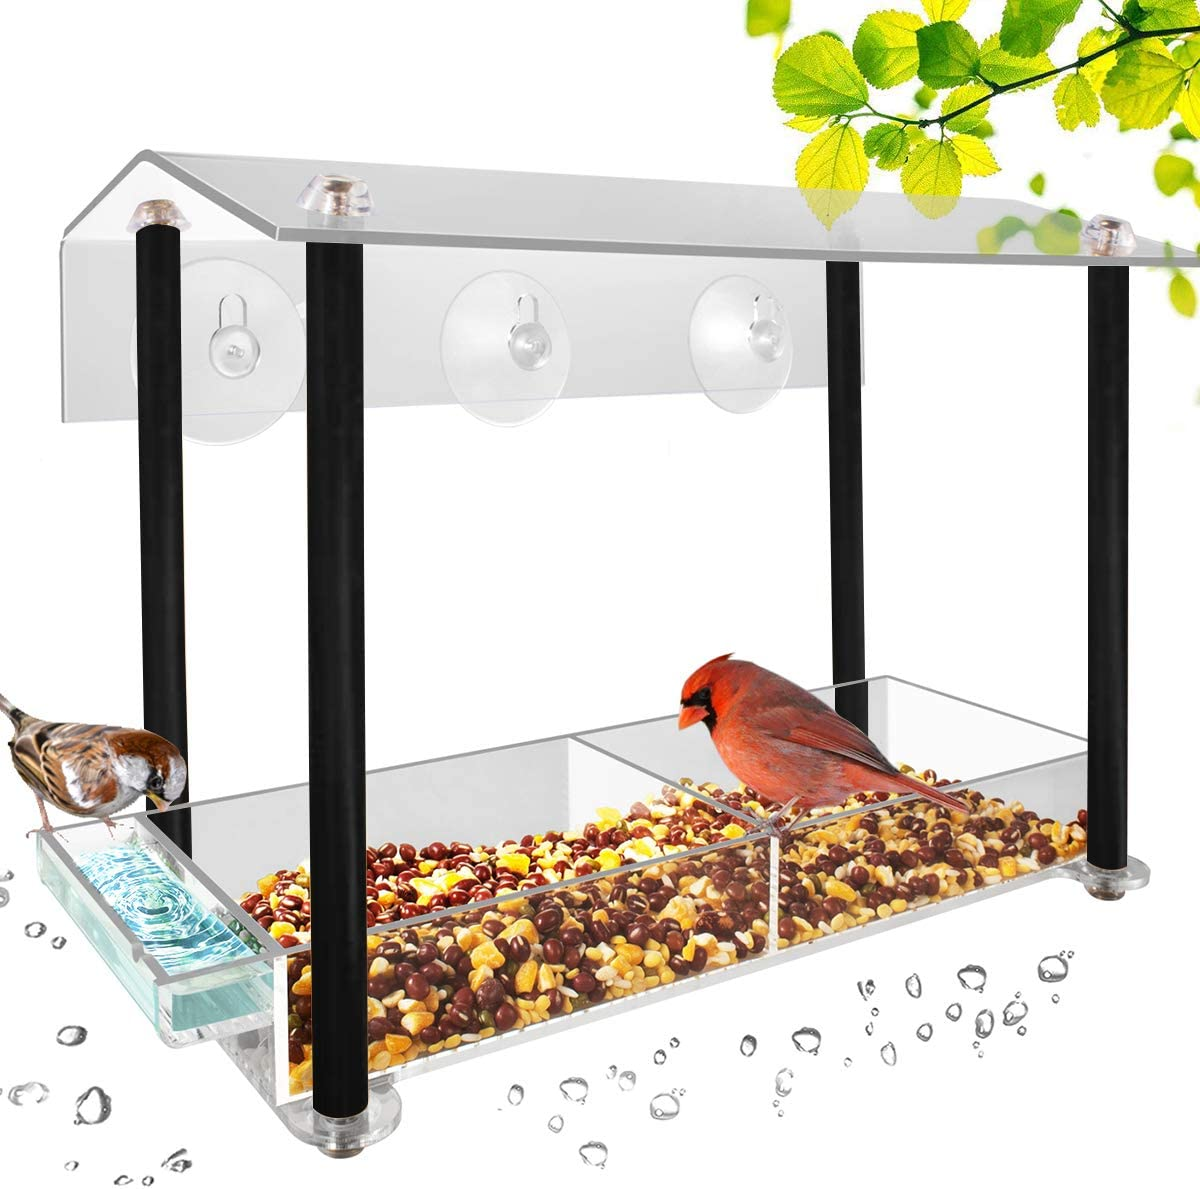 HHXRISE Acrylic Window Bird Feeder, Large Size with Suction Cups & Seed Tray, Creative Water Sink & Bird Home Design, Weatherproof with Shield Roof & Drain Hole, Outdoor Acrylic Bird House (12 inch) …